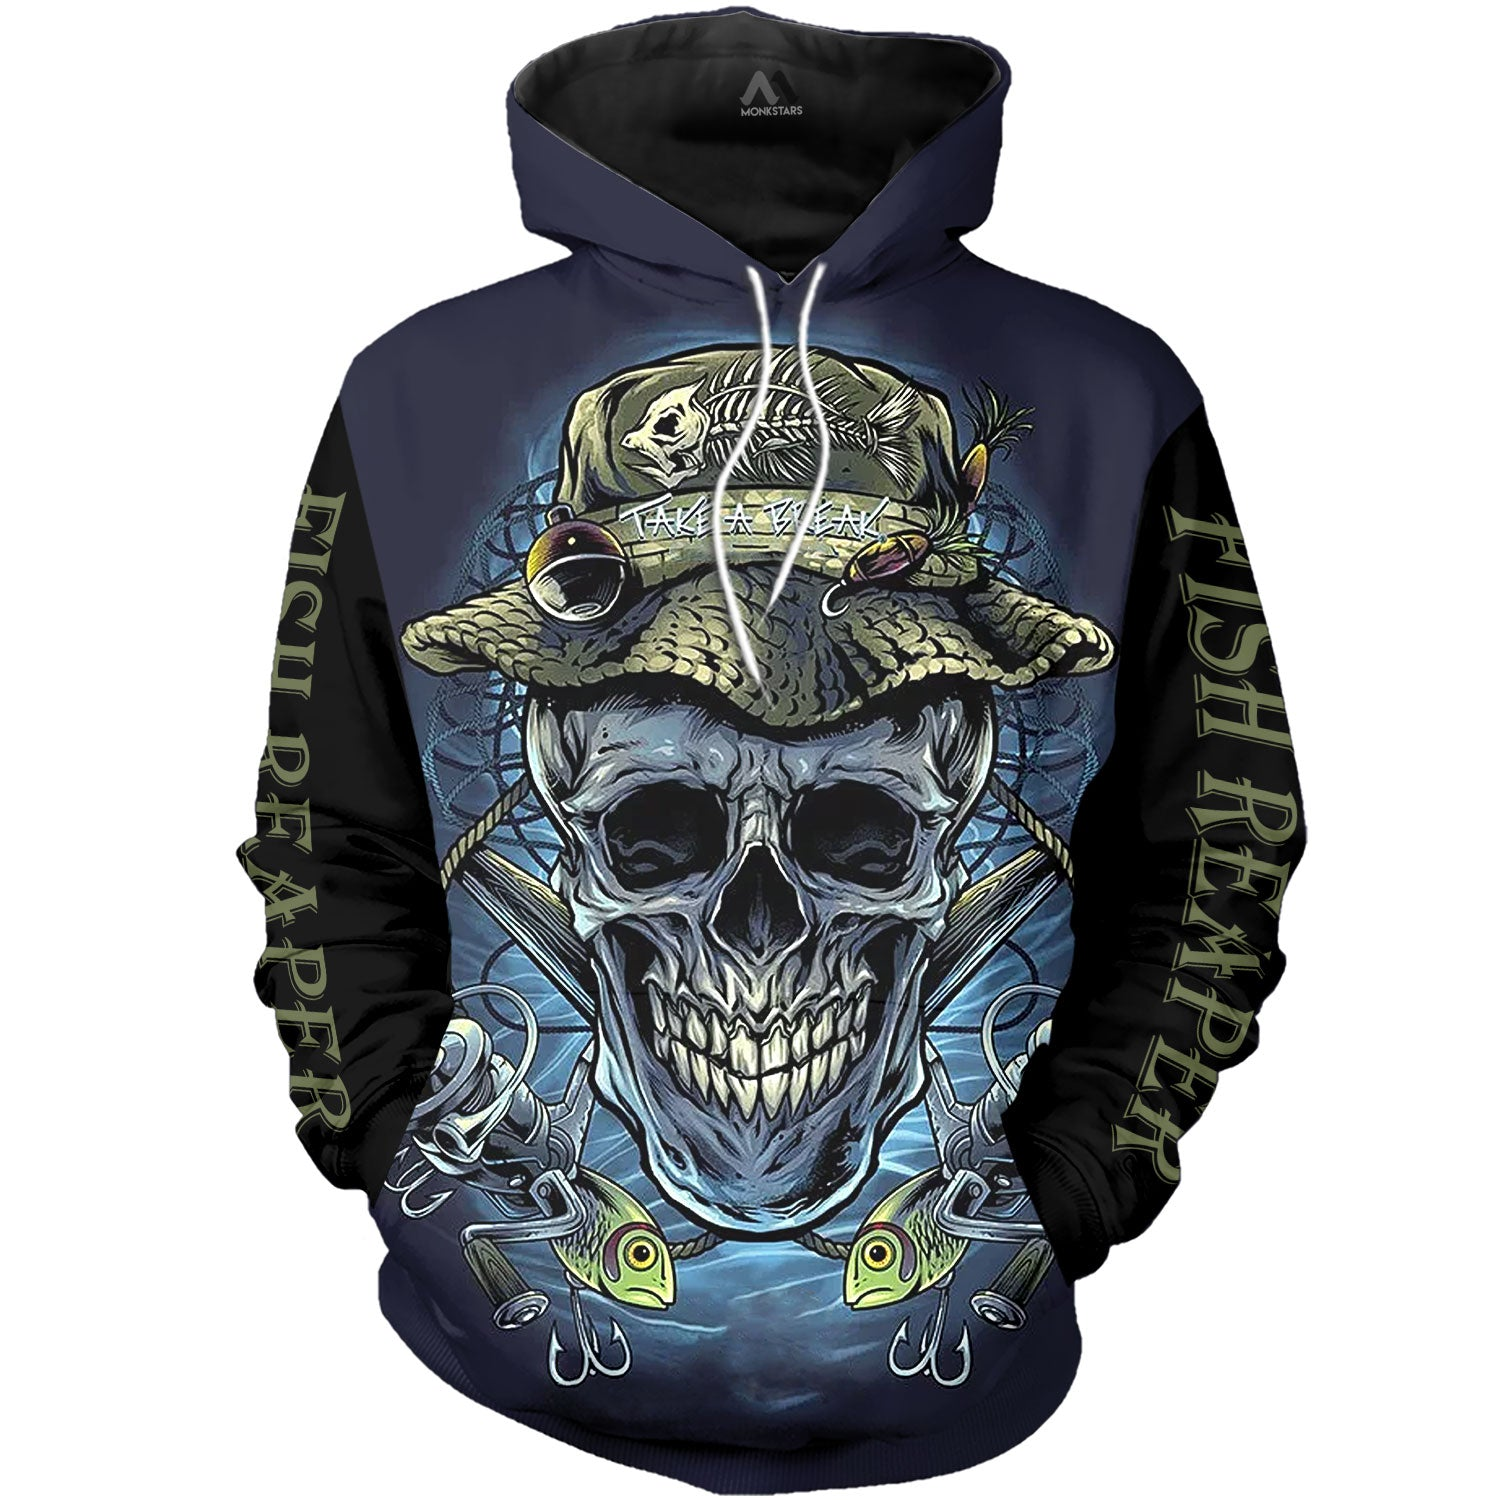 Skull Fisherman 3D All Over Printed Shirts For Men & Women